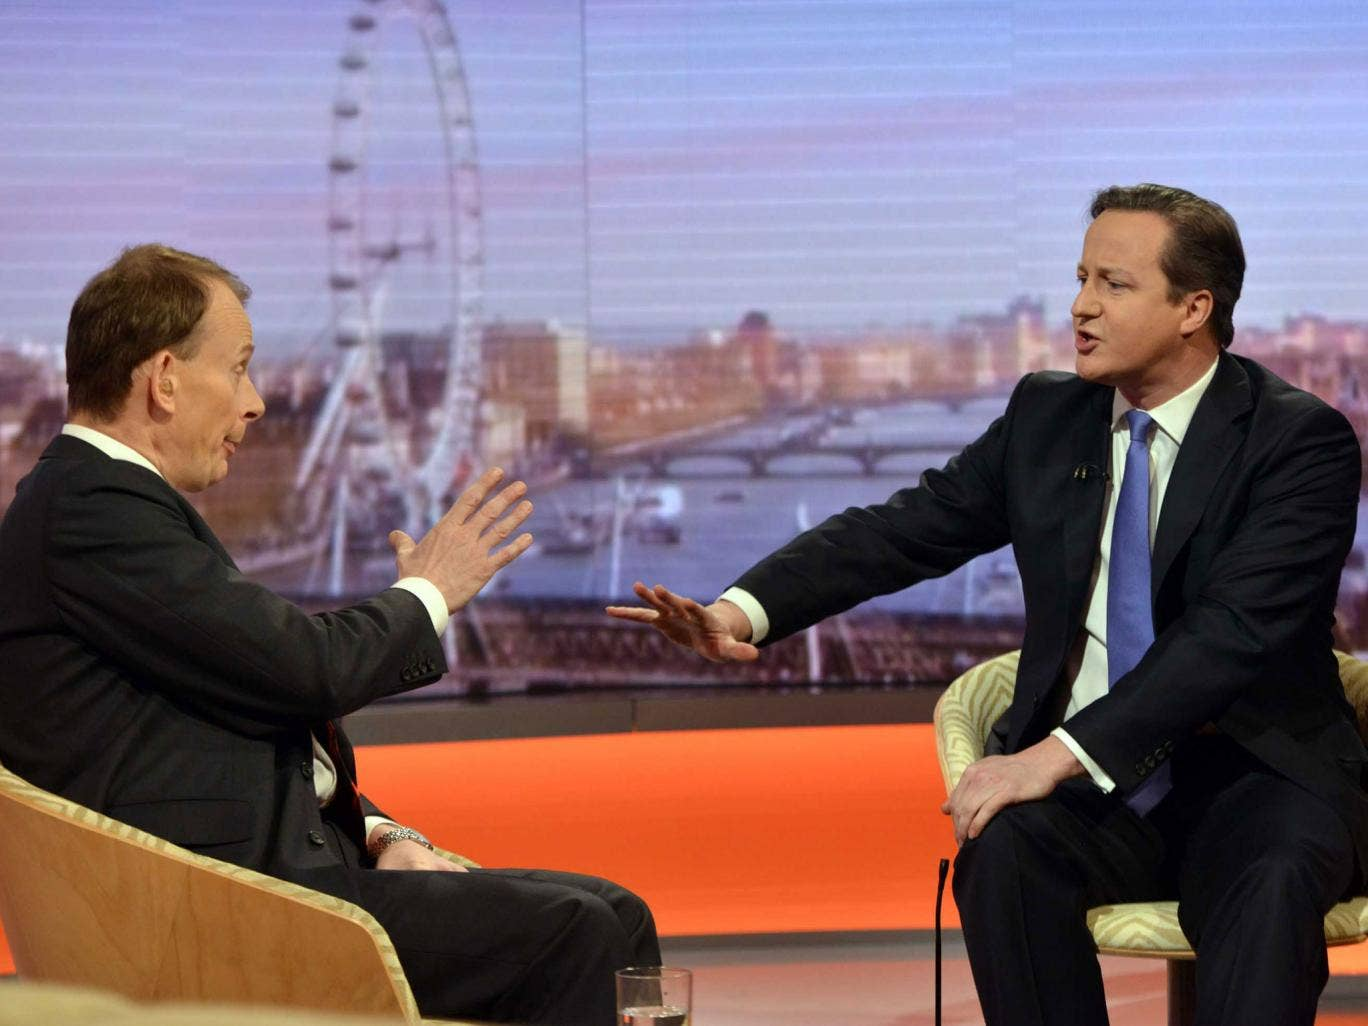 David Cameron sidestepped awkward questions on pensioner benefits on 'The Andrew Marr Show'